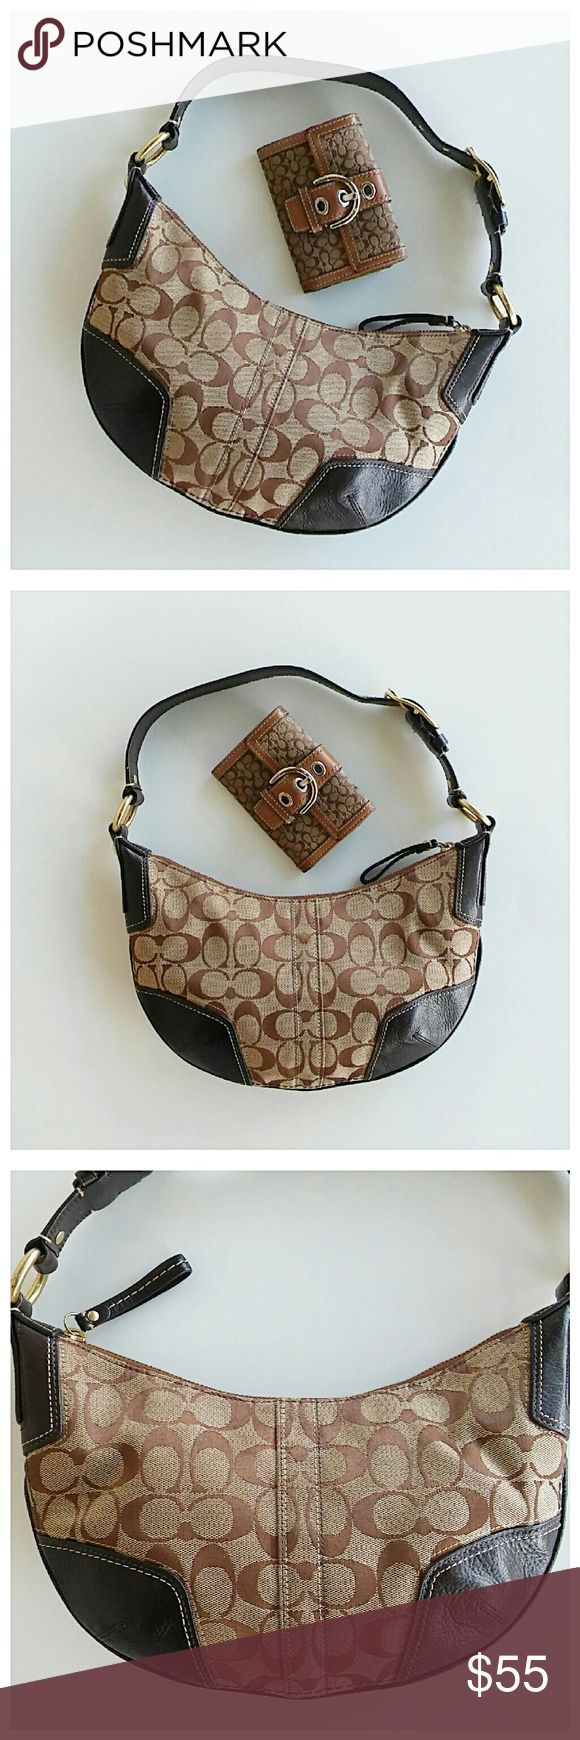 """Coach Hobo Bag & Wallet Bundle Two authentic Coach pieces, both in excellent condition. The only obvious flaw on the bag is stuck gum on the inside lining as shown in pic #6. Bag measures: 7"""" x 12"""" + 8"""" strap drop Wallet measures: 4.5"""" x 3"""" 💥 Reasonable offers accepted 💥 Coach Bags Hobos"""